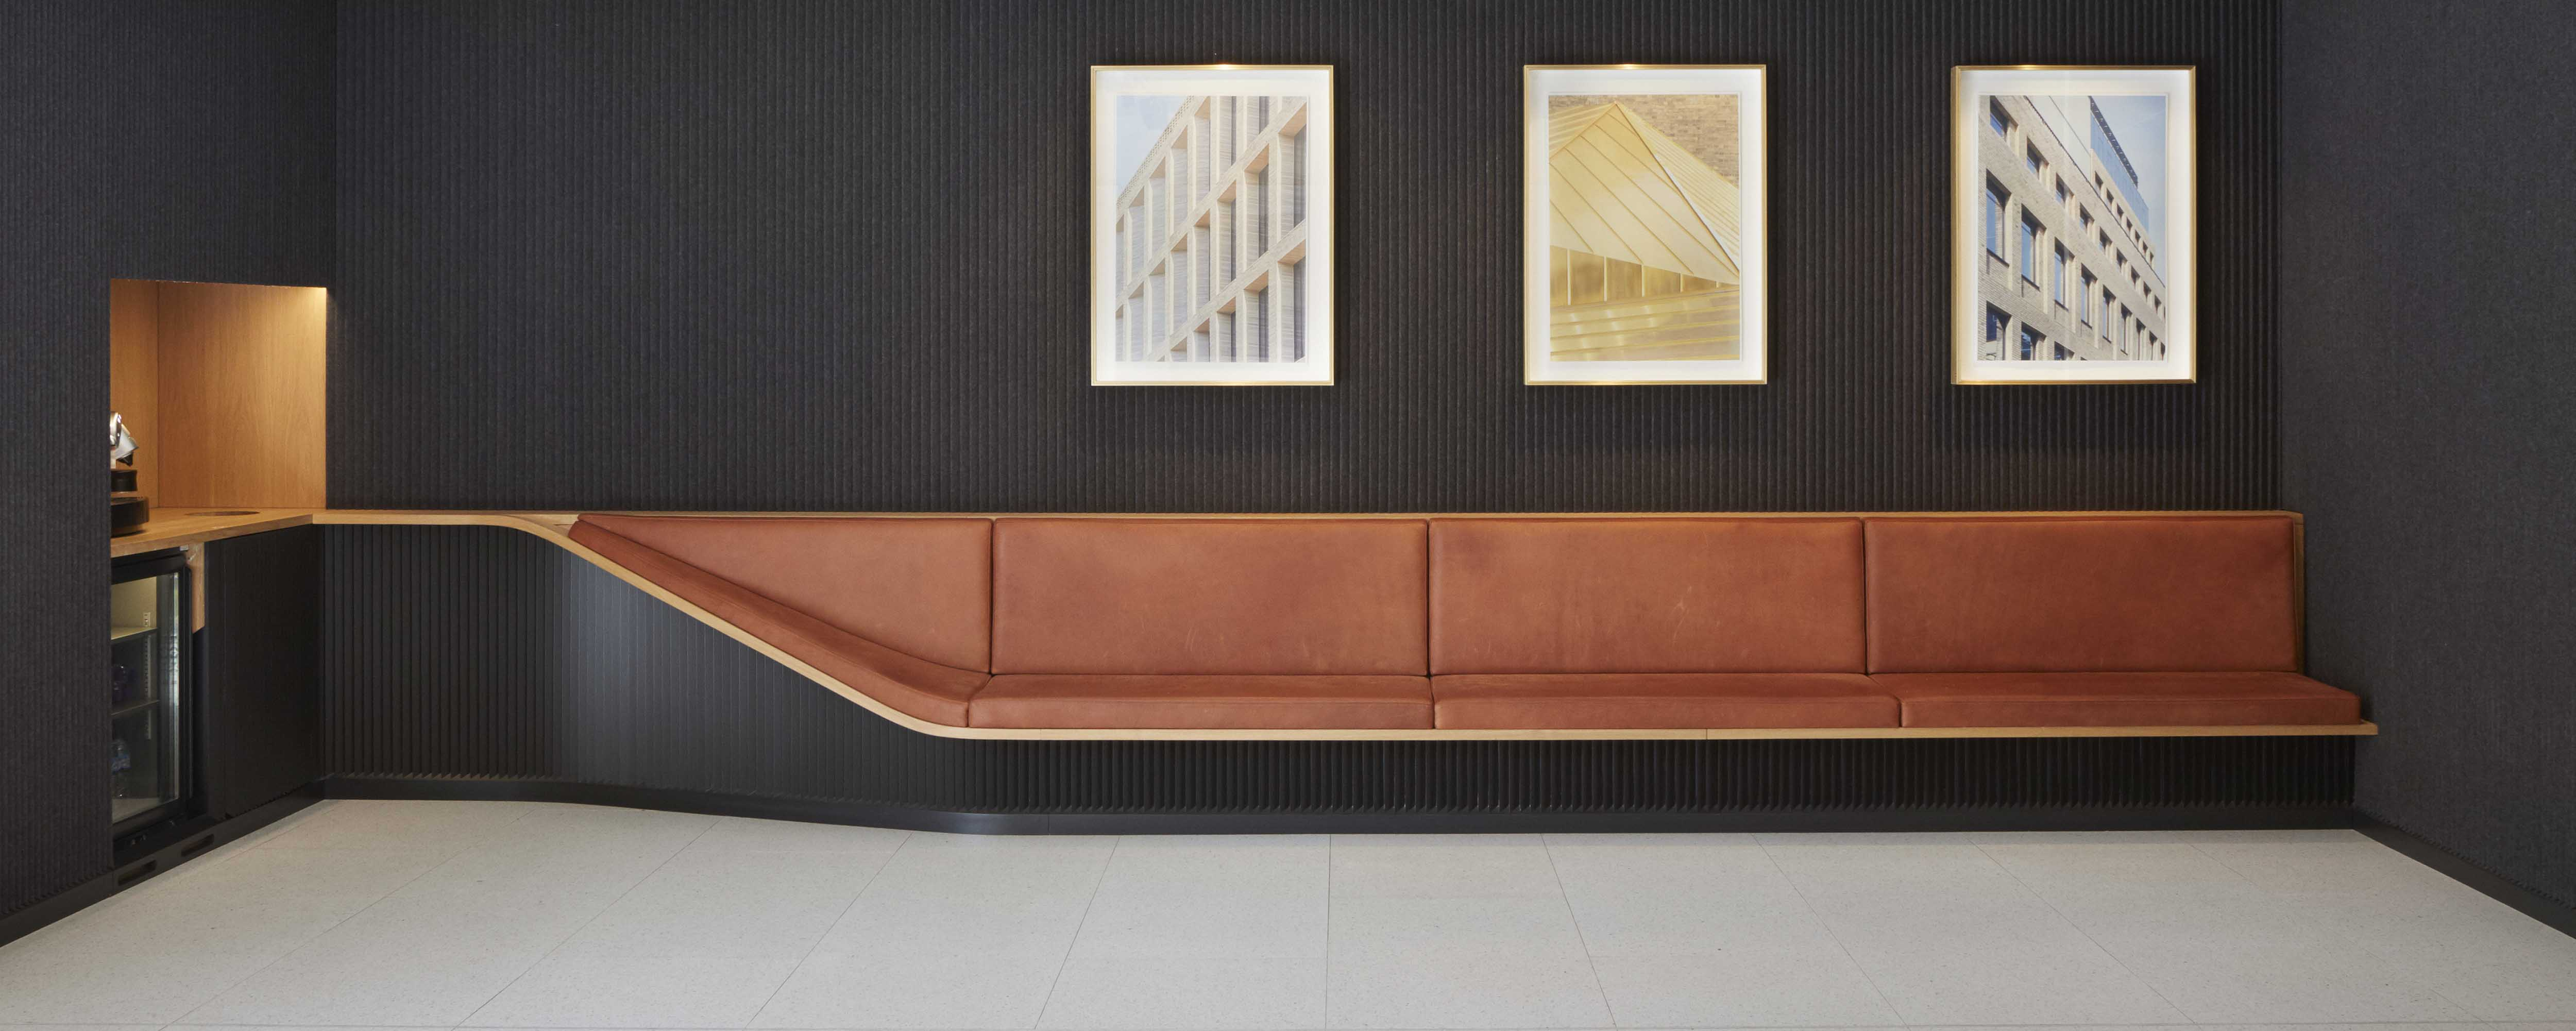 Bespoke reception seating for The Centro Building